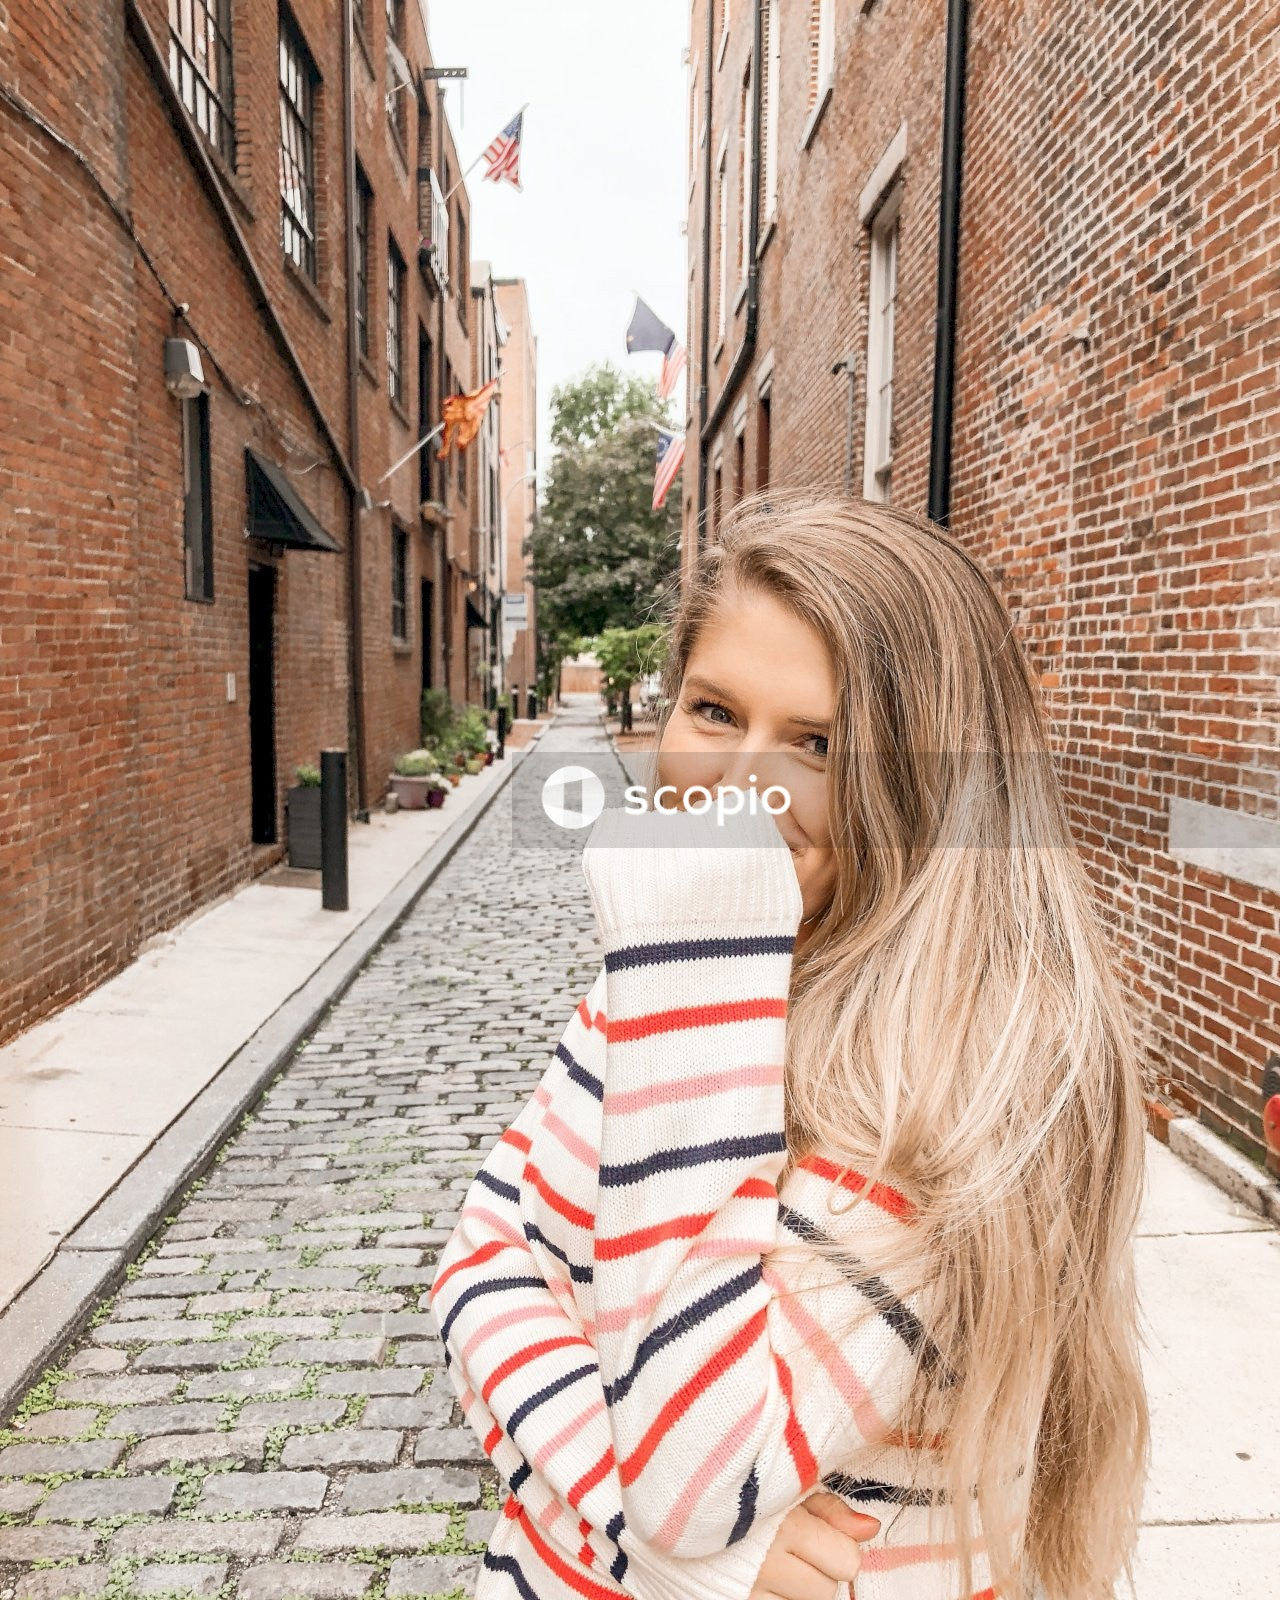 Woman in red and white striped long sleeve shirt standing on sidewalk